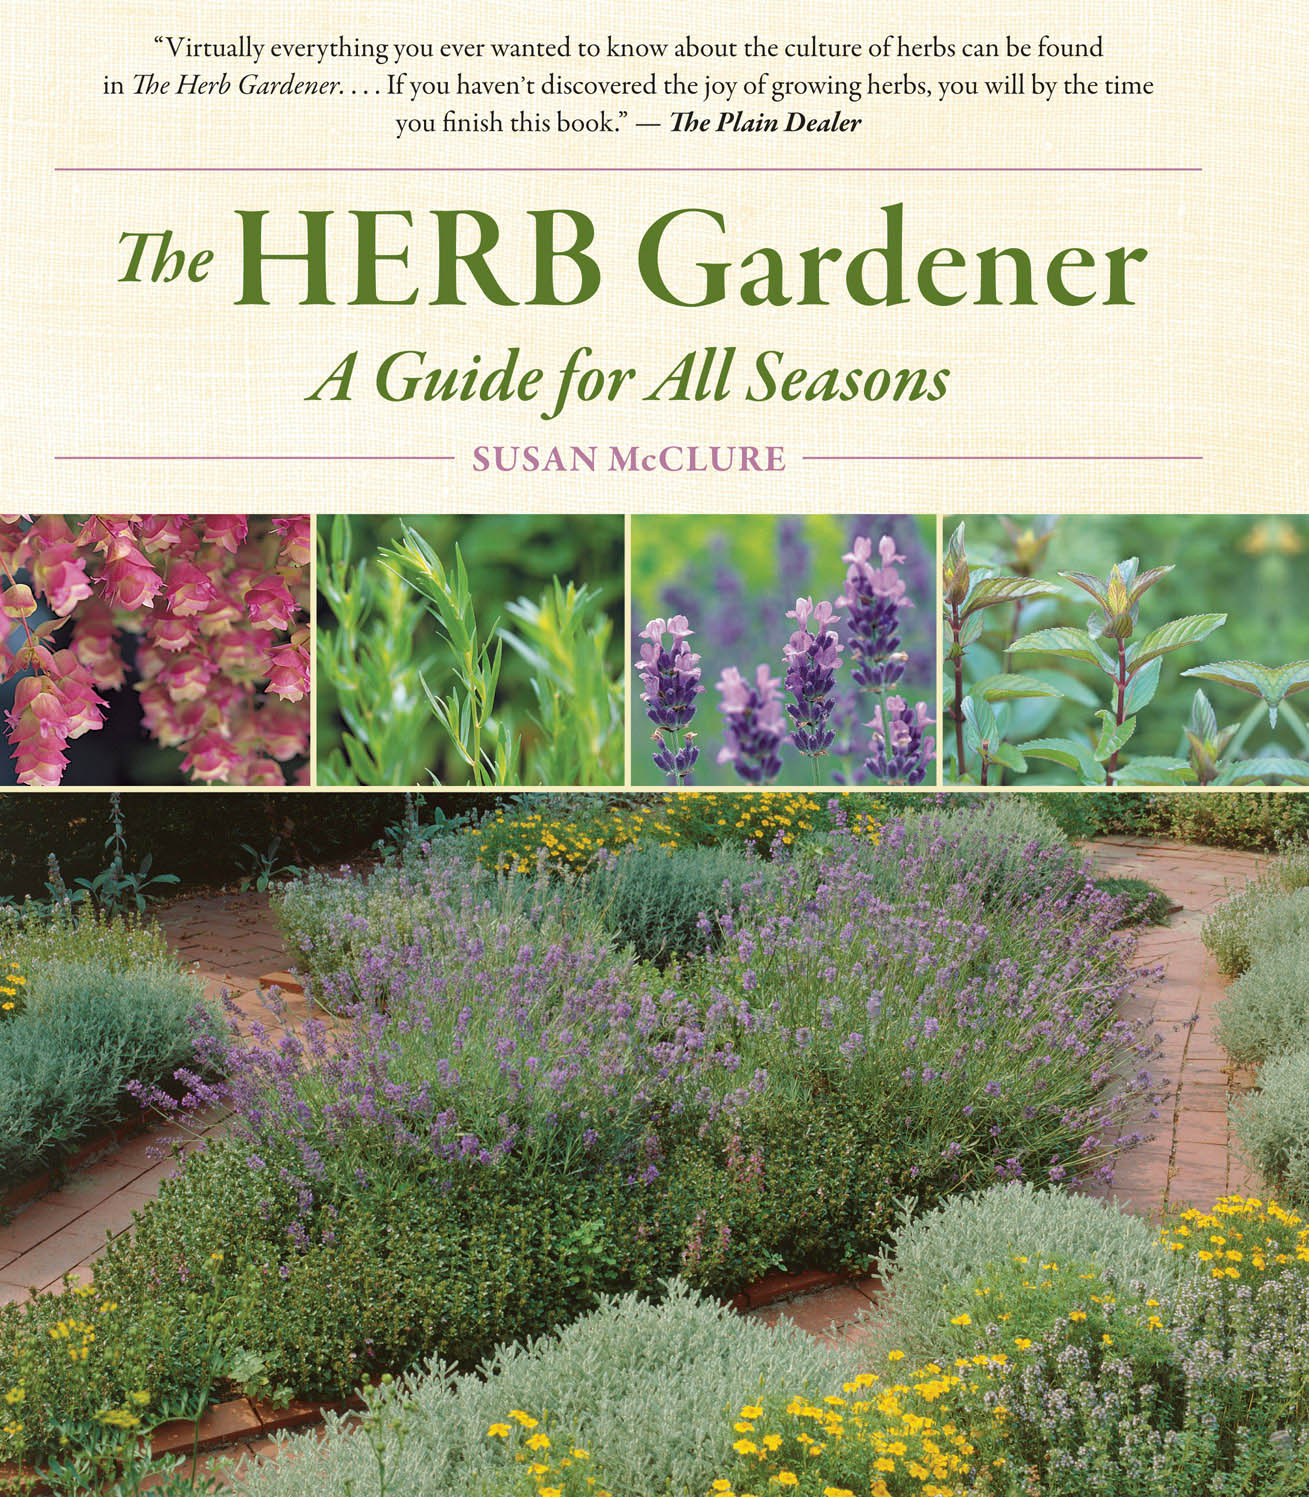 The Herb Gardener A Guide for All Seasons - Susan McClure